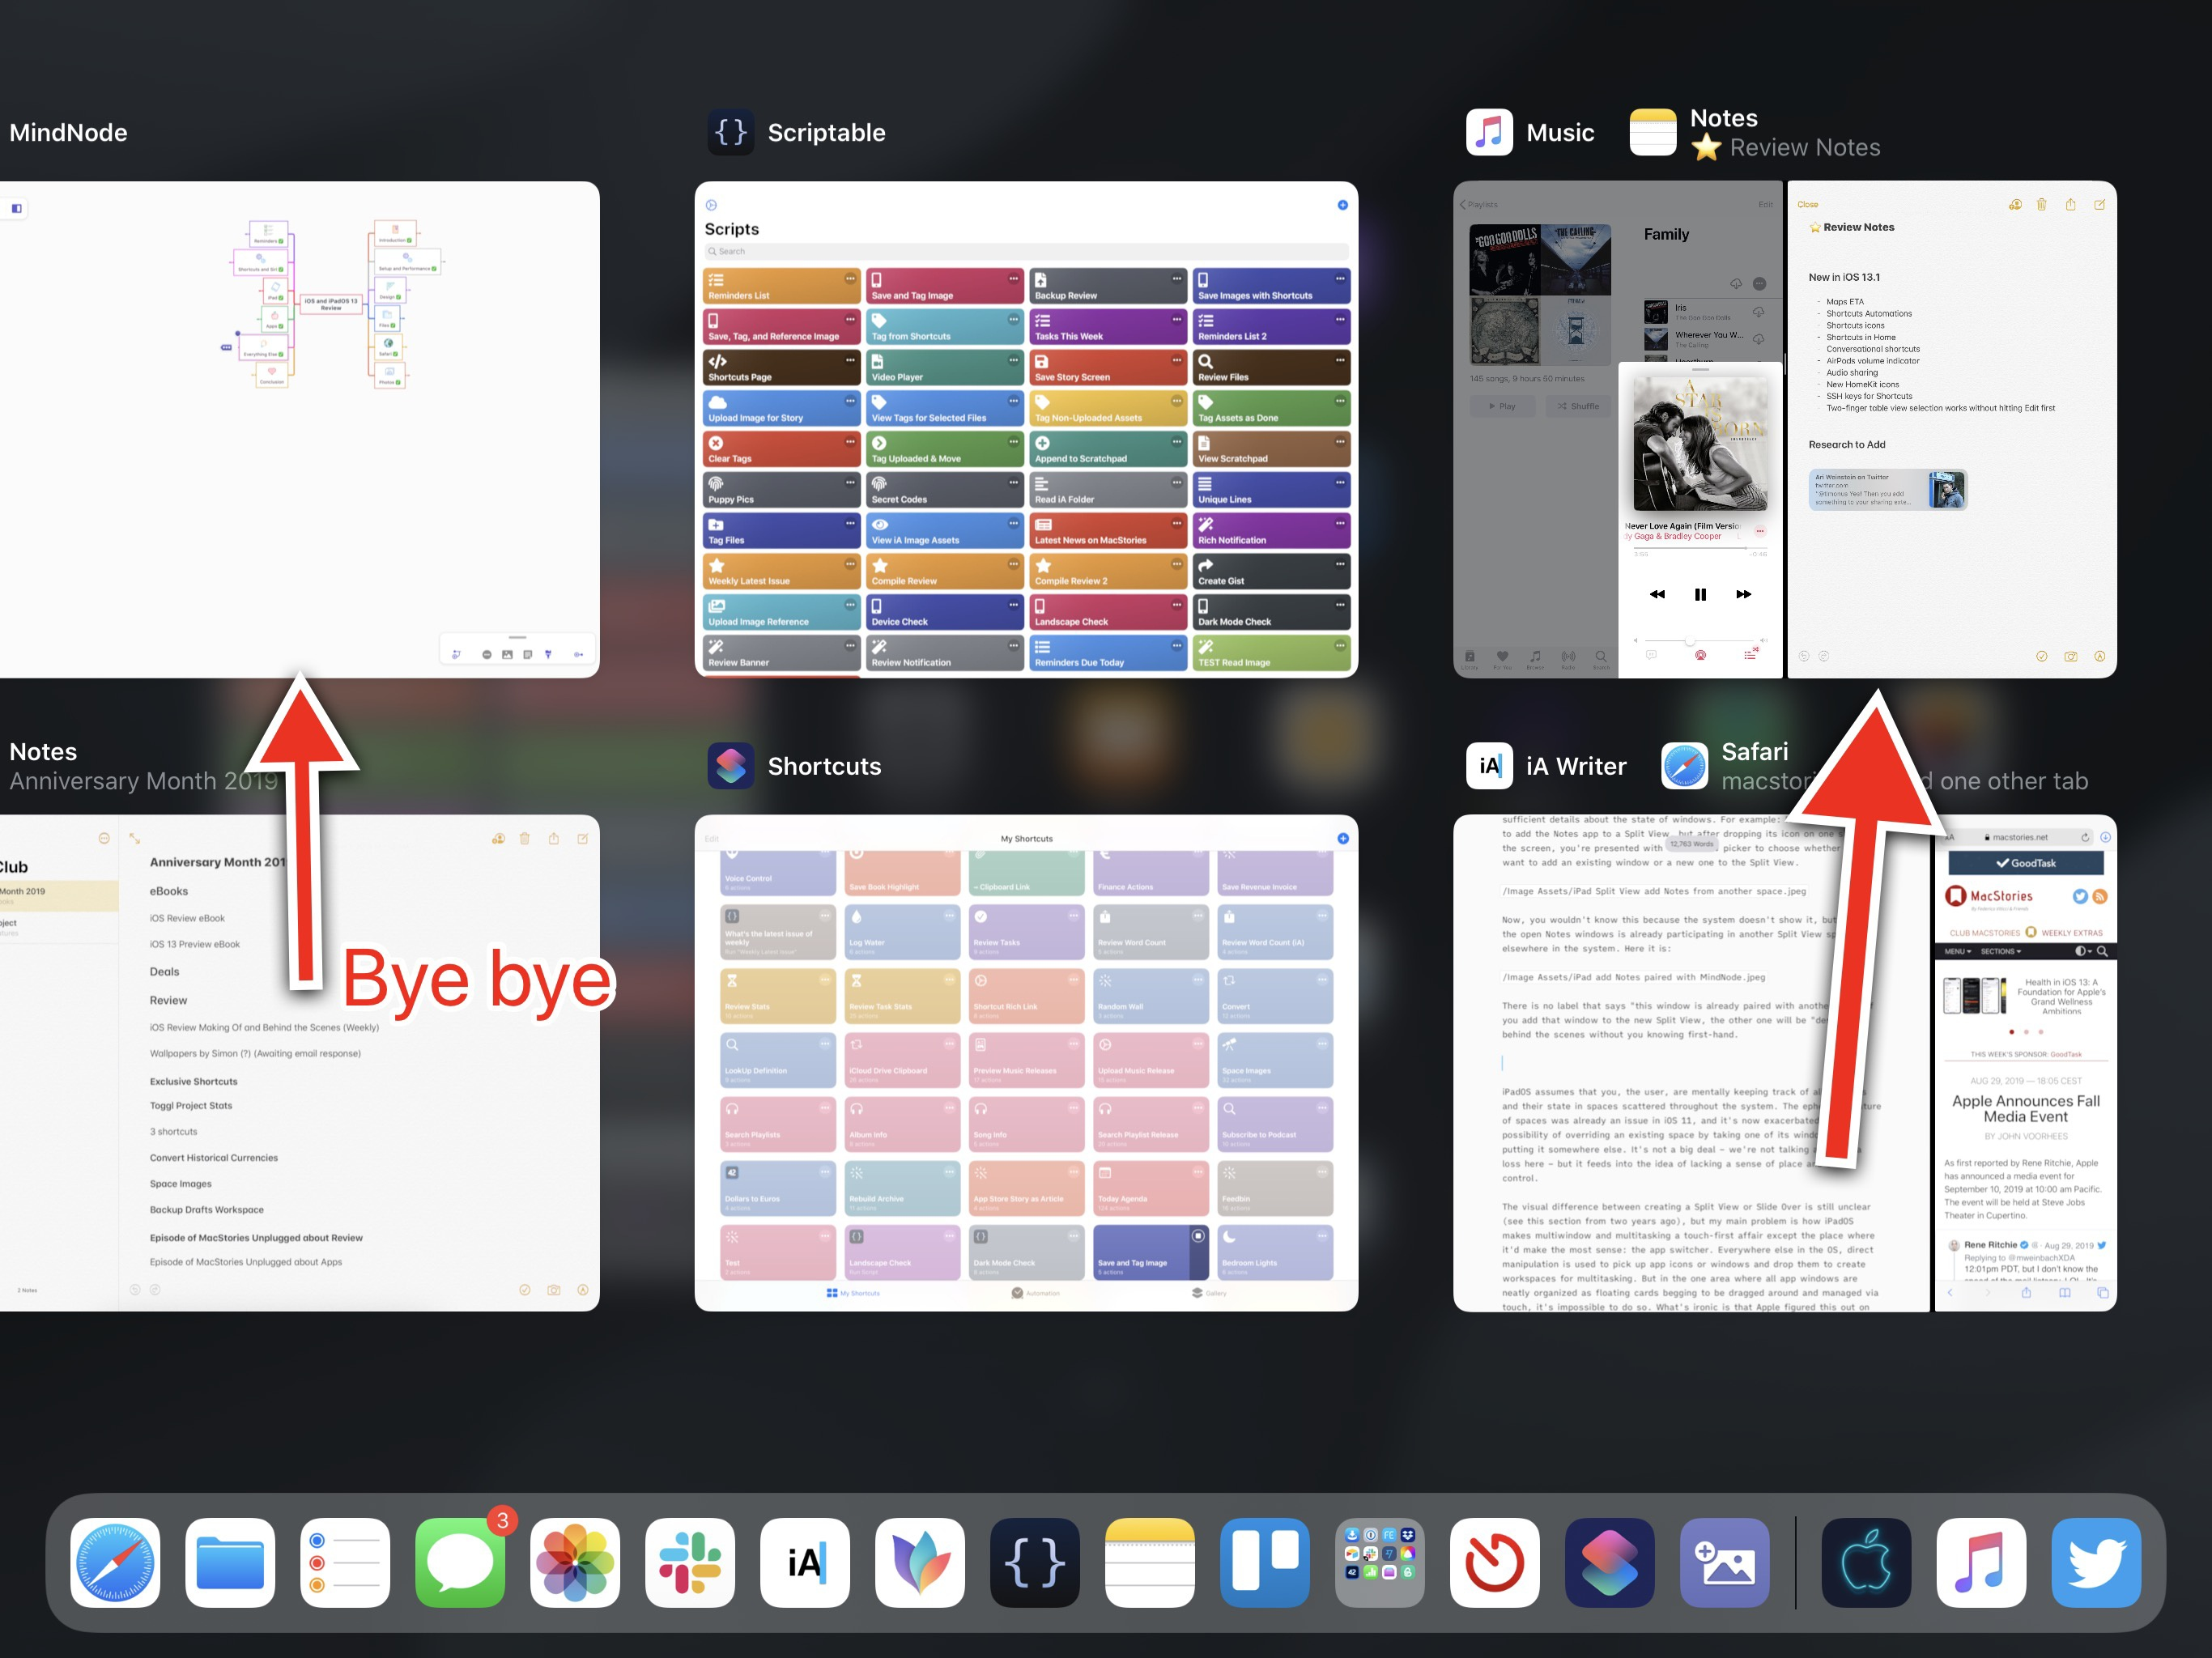 The original Split View has been un-assigned, and now Notes is paired with Music.